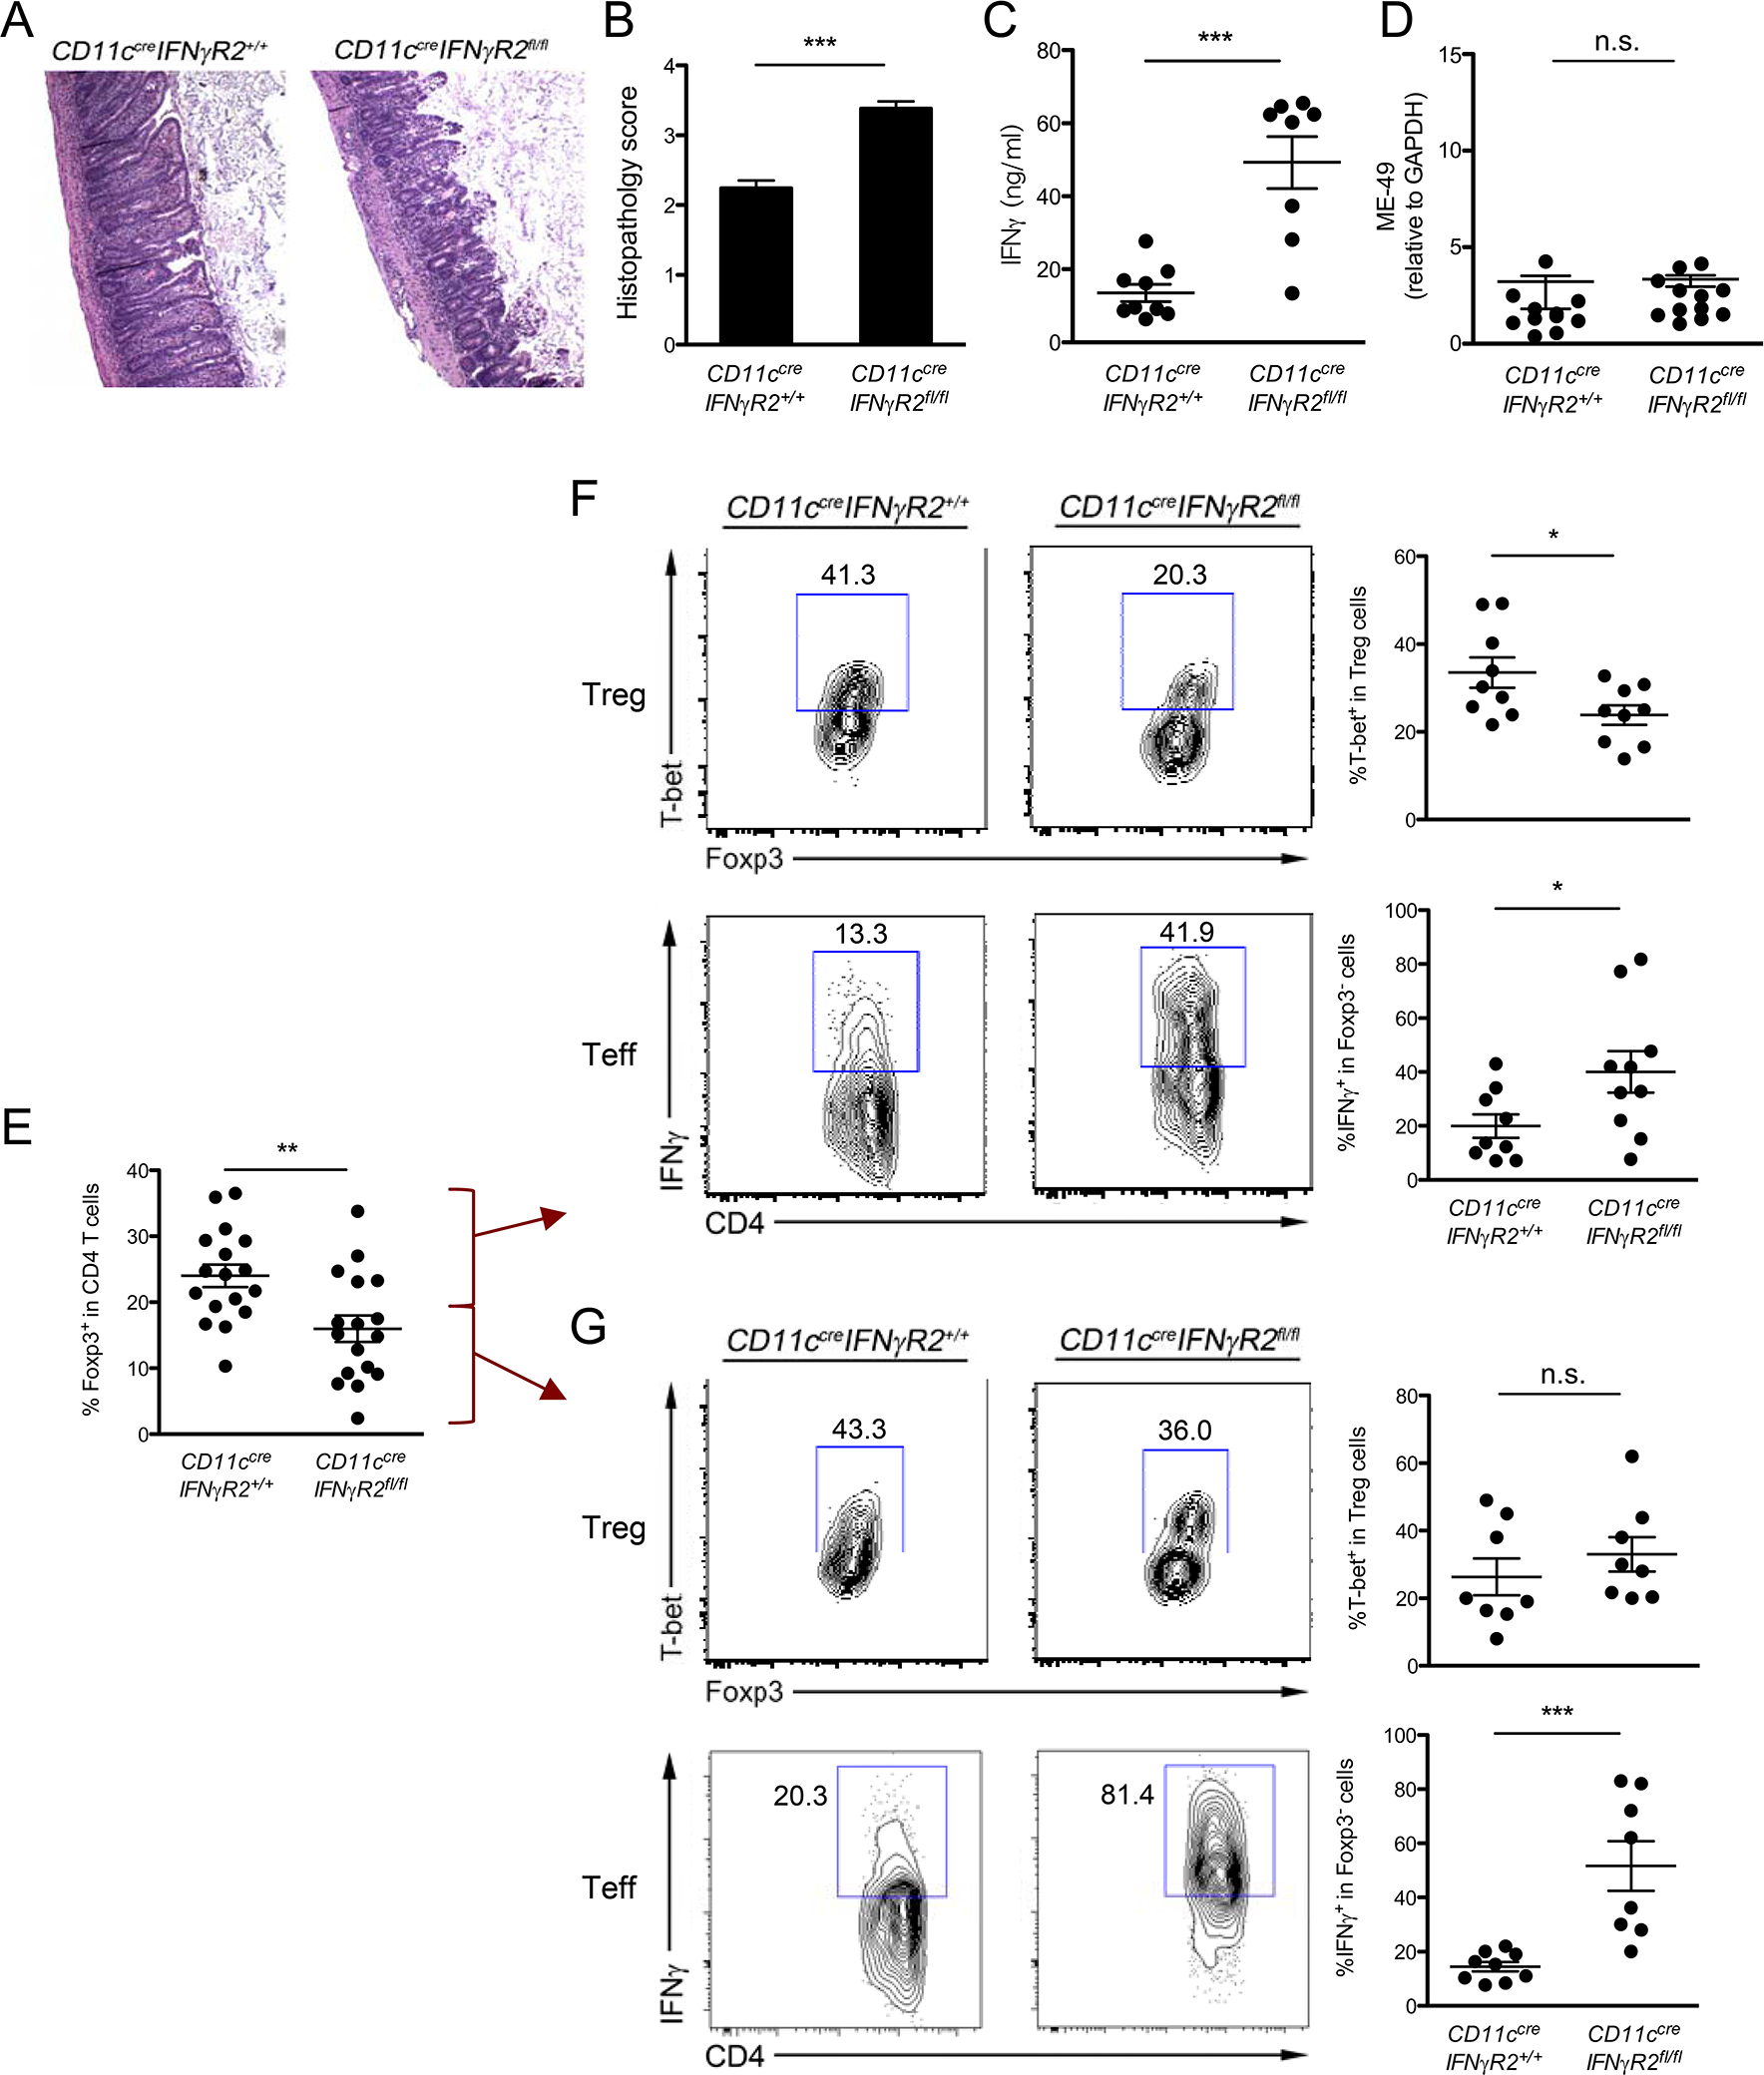 Reduced T-bet<sup>+</sup> Th1-Treg cells in <i>CD11c</i><sup><i>cre</i></sup><i>IFNγR2</i><sup><i>fl/fl</i></sup> mice resulted in unrestrained IFNγ-mediated Th1 inflammation during <i>T</i>. <i>gondii</i> infection.